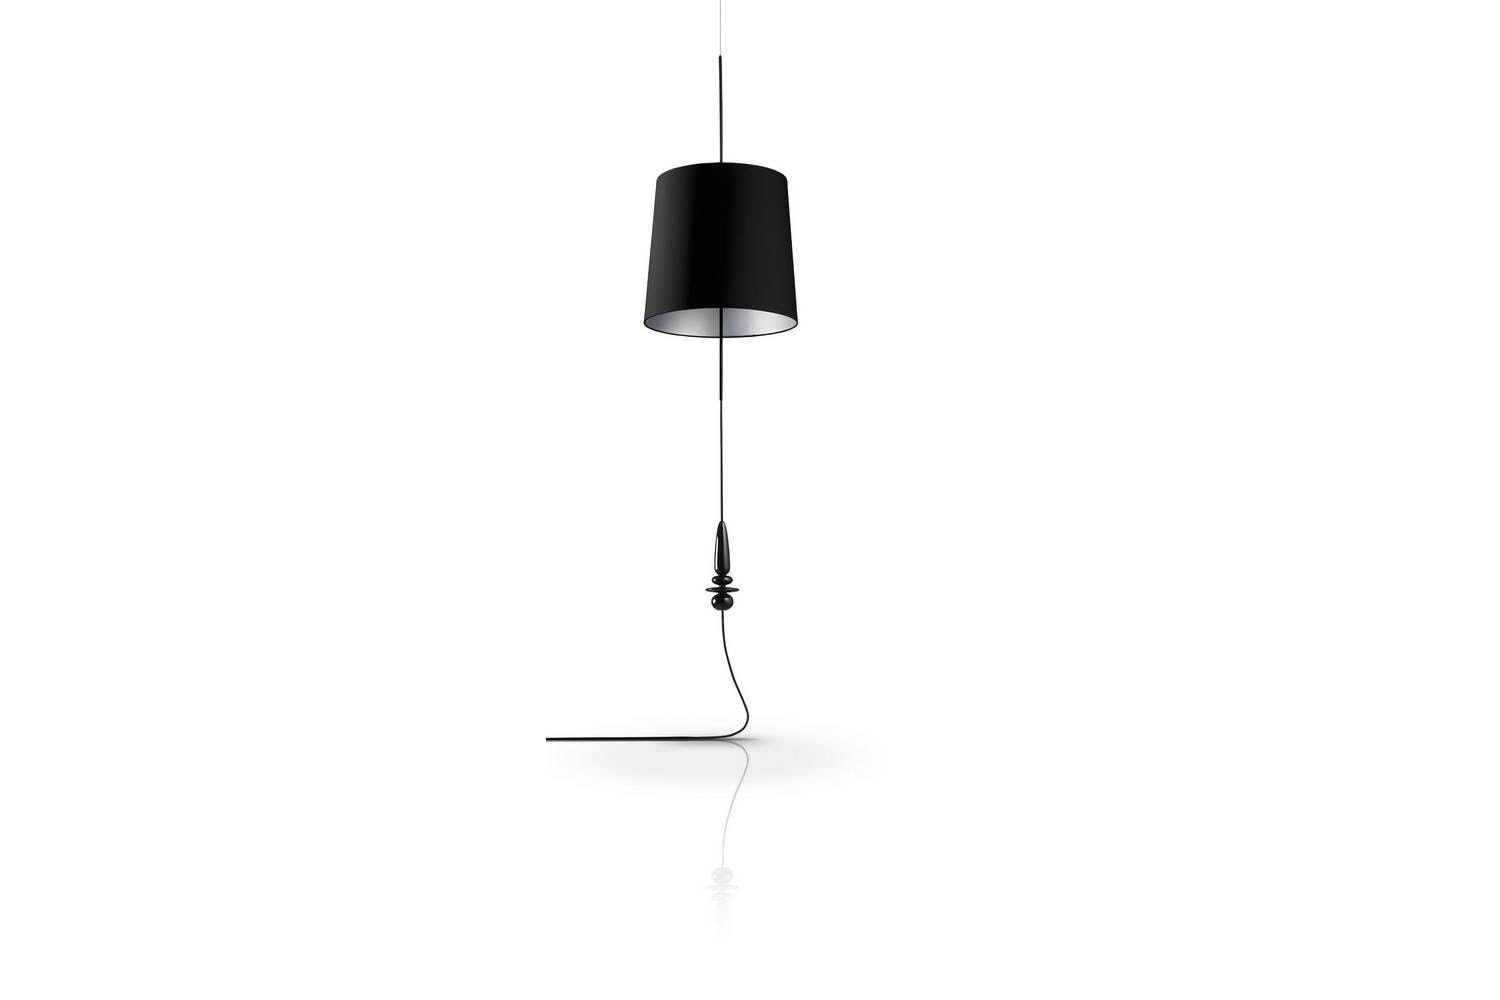 Gravity Pendant by Henrik Pedersen for Frandsen Lighting